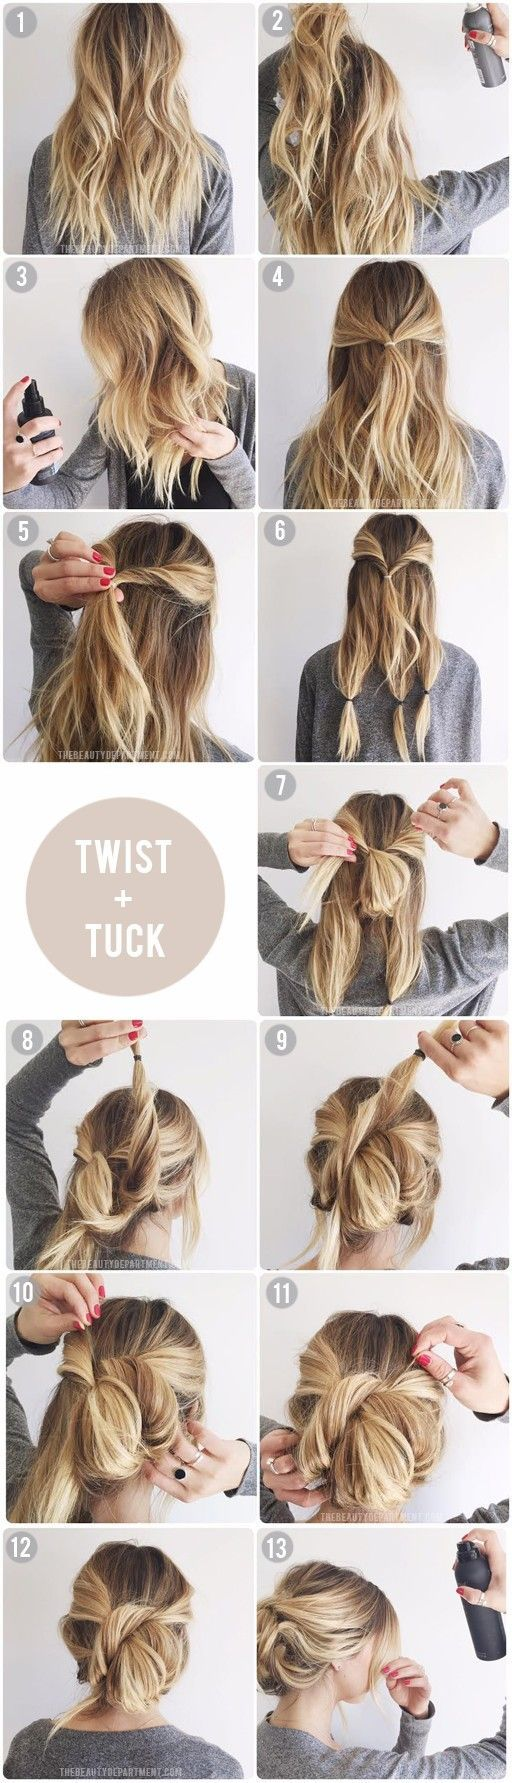 121 best Long Wedding Hairstyles images on Pinterest | Bridal ...